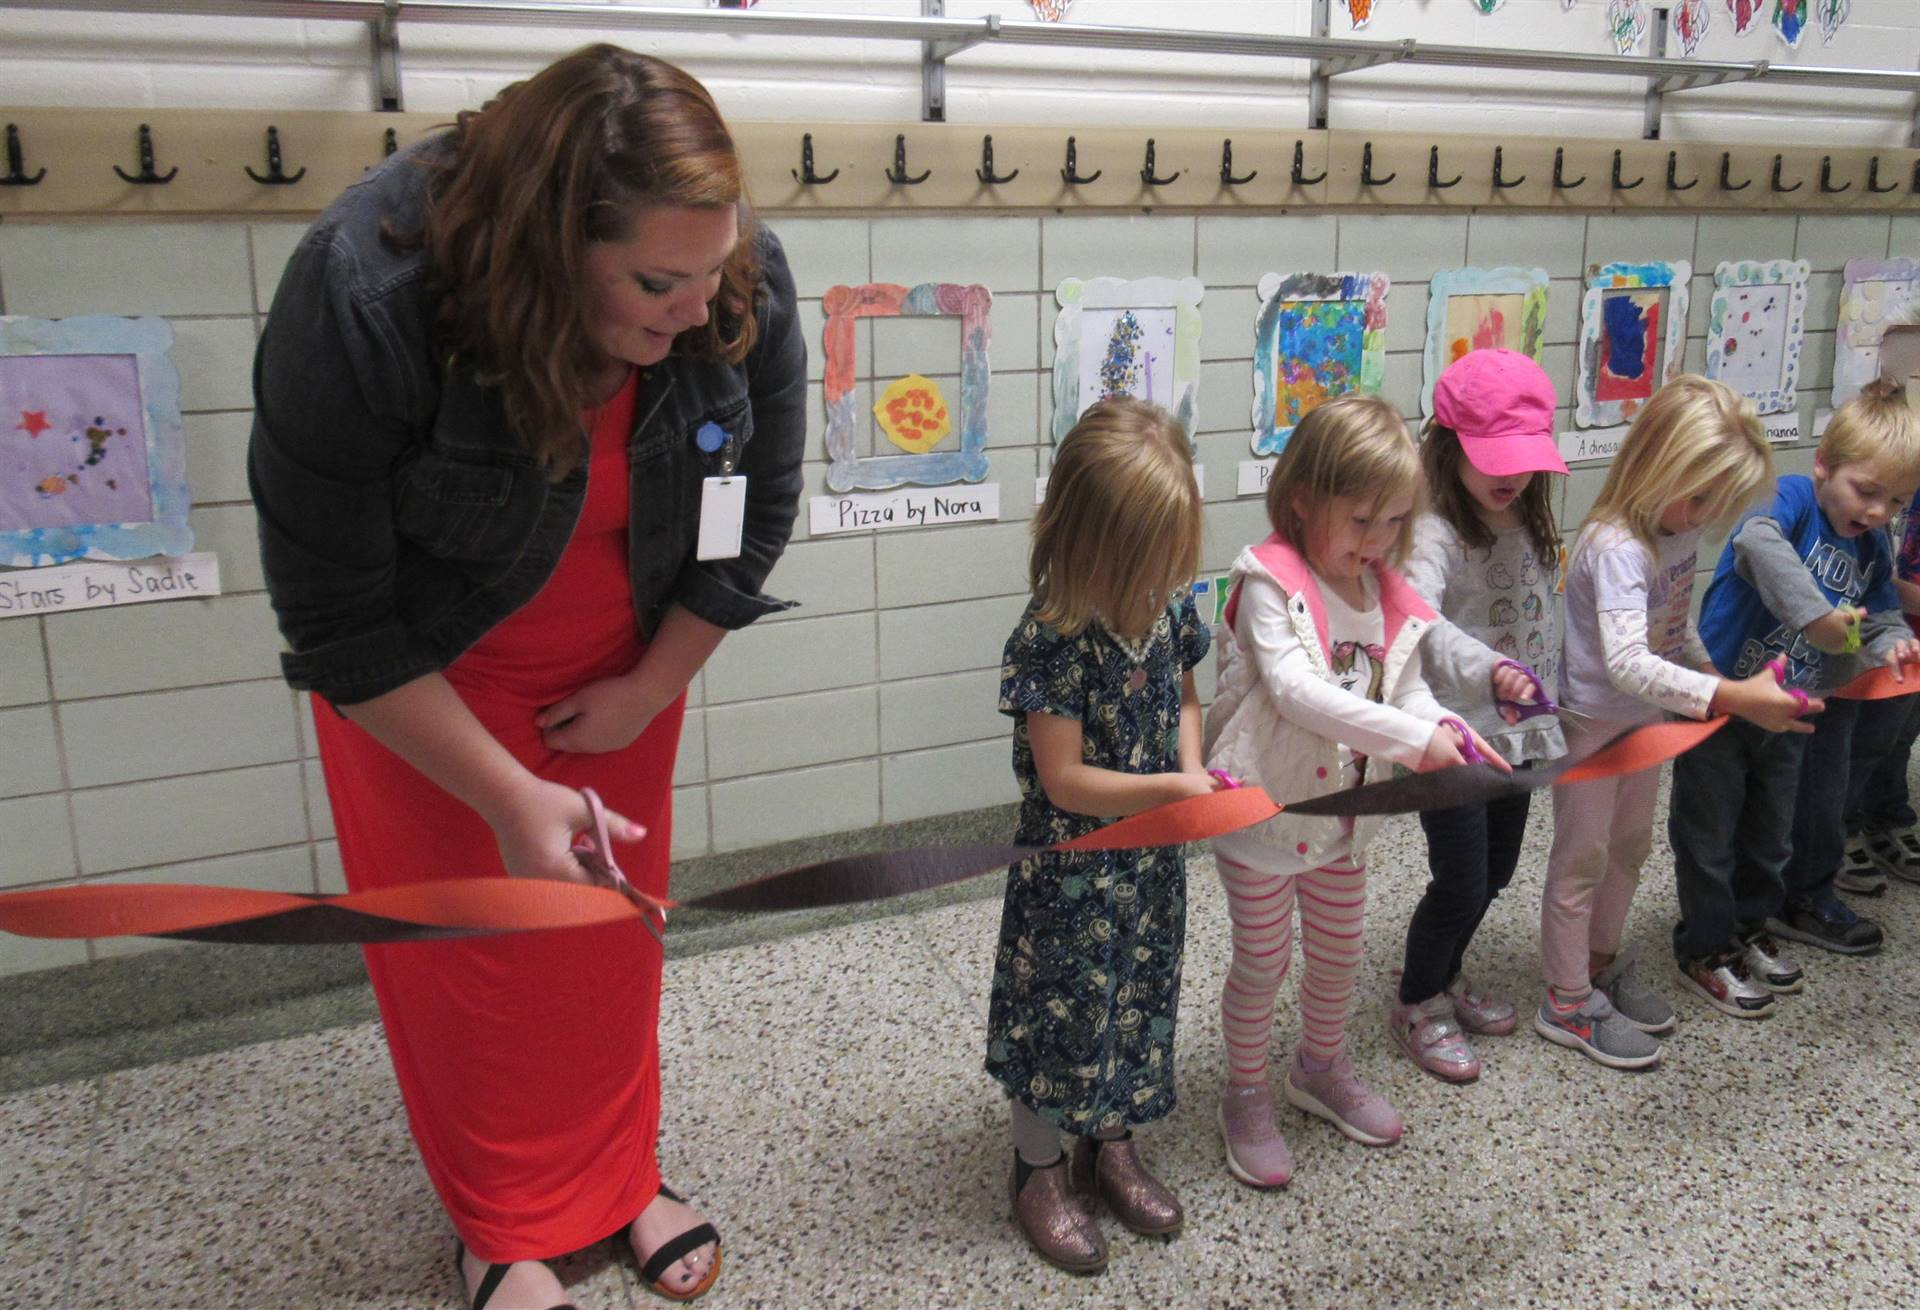 Tiny Toppers Ribbon Cutting Ceremony for Art Show with Ms. Kristen